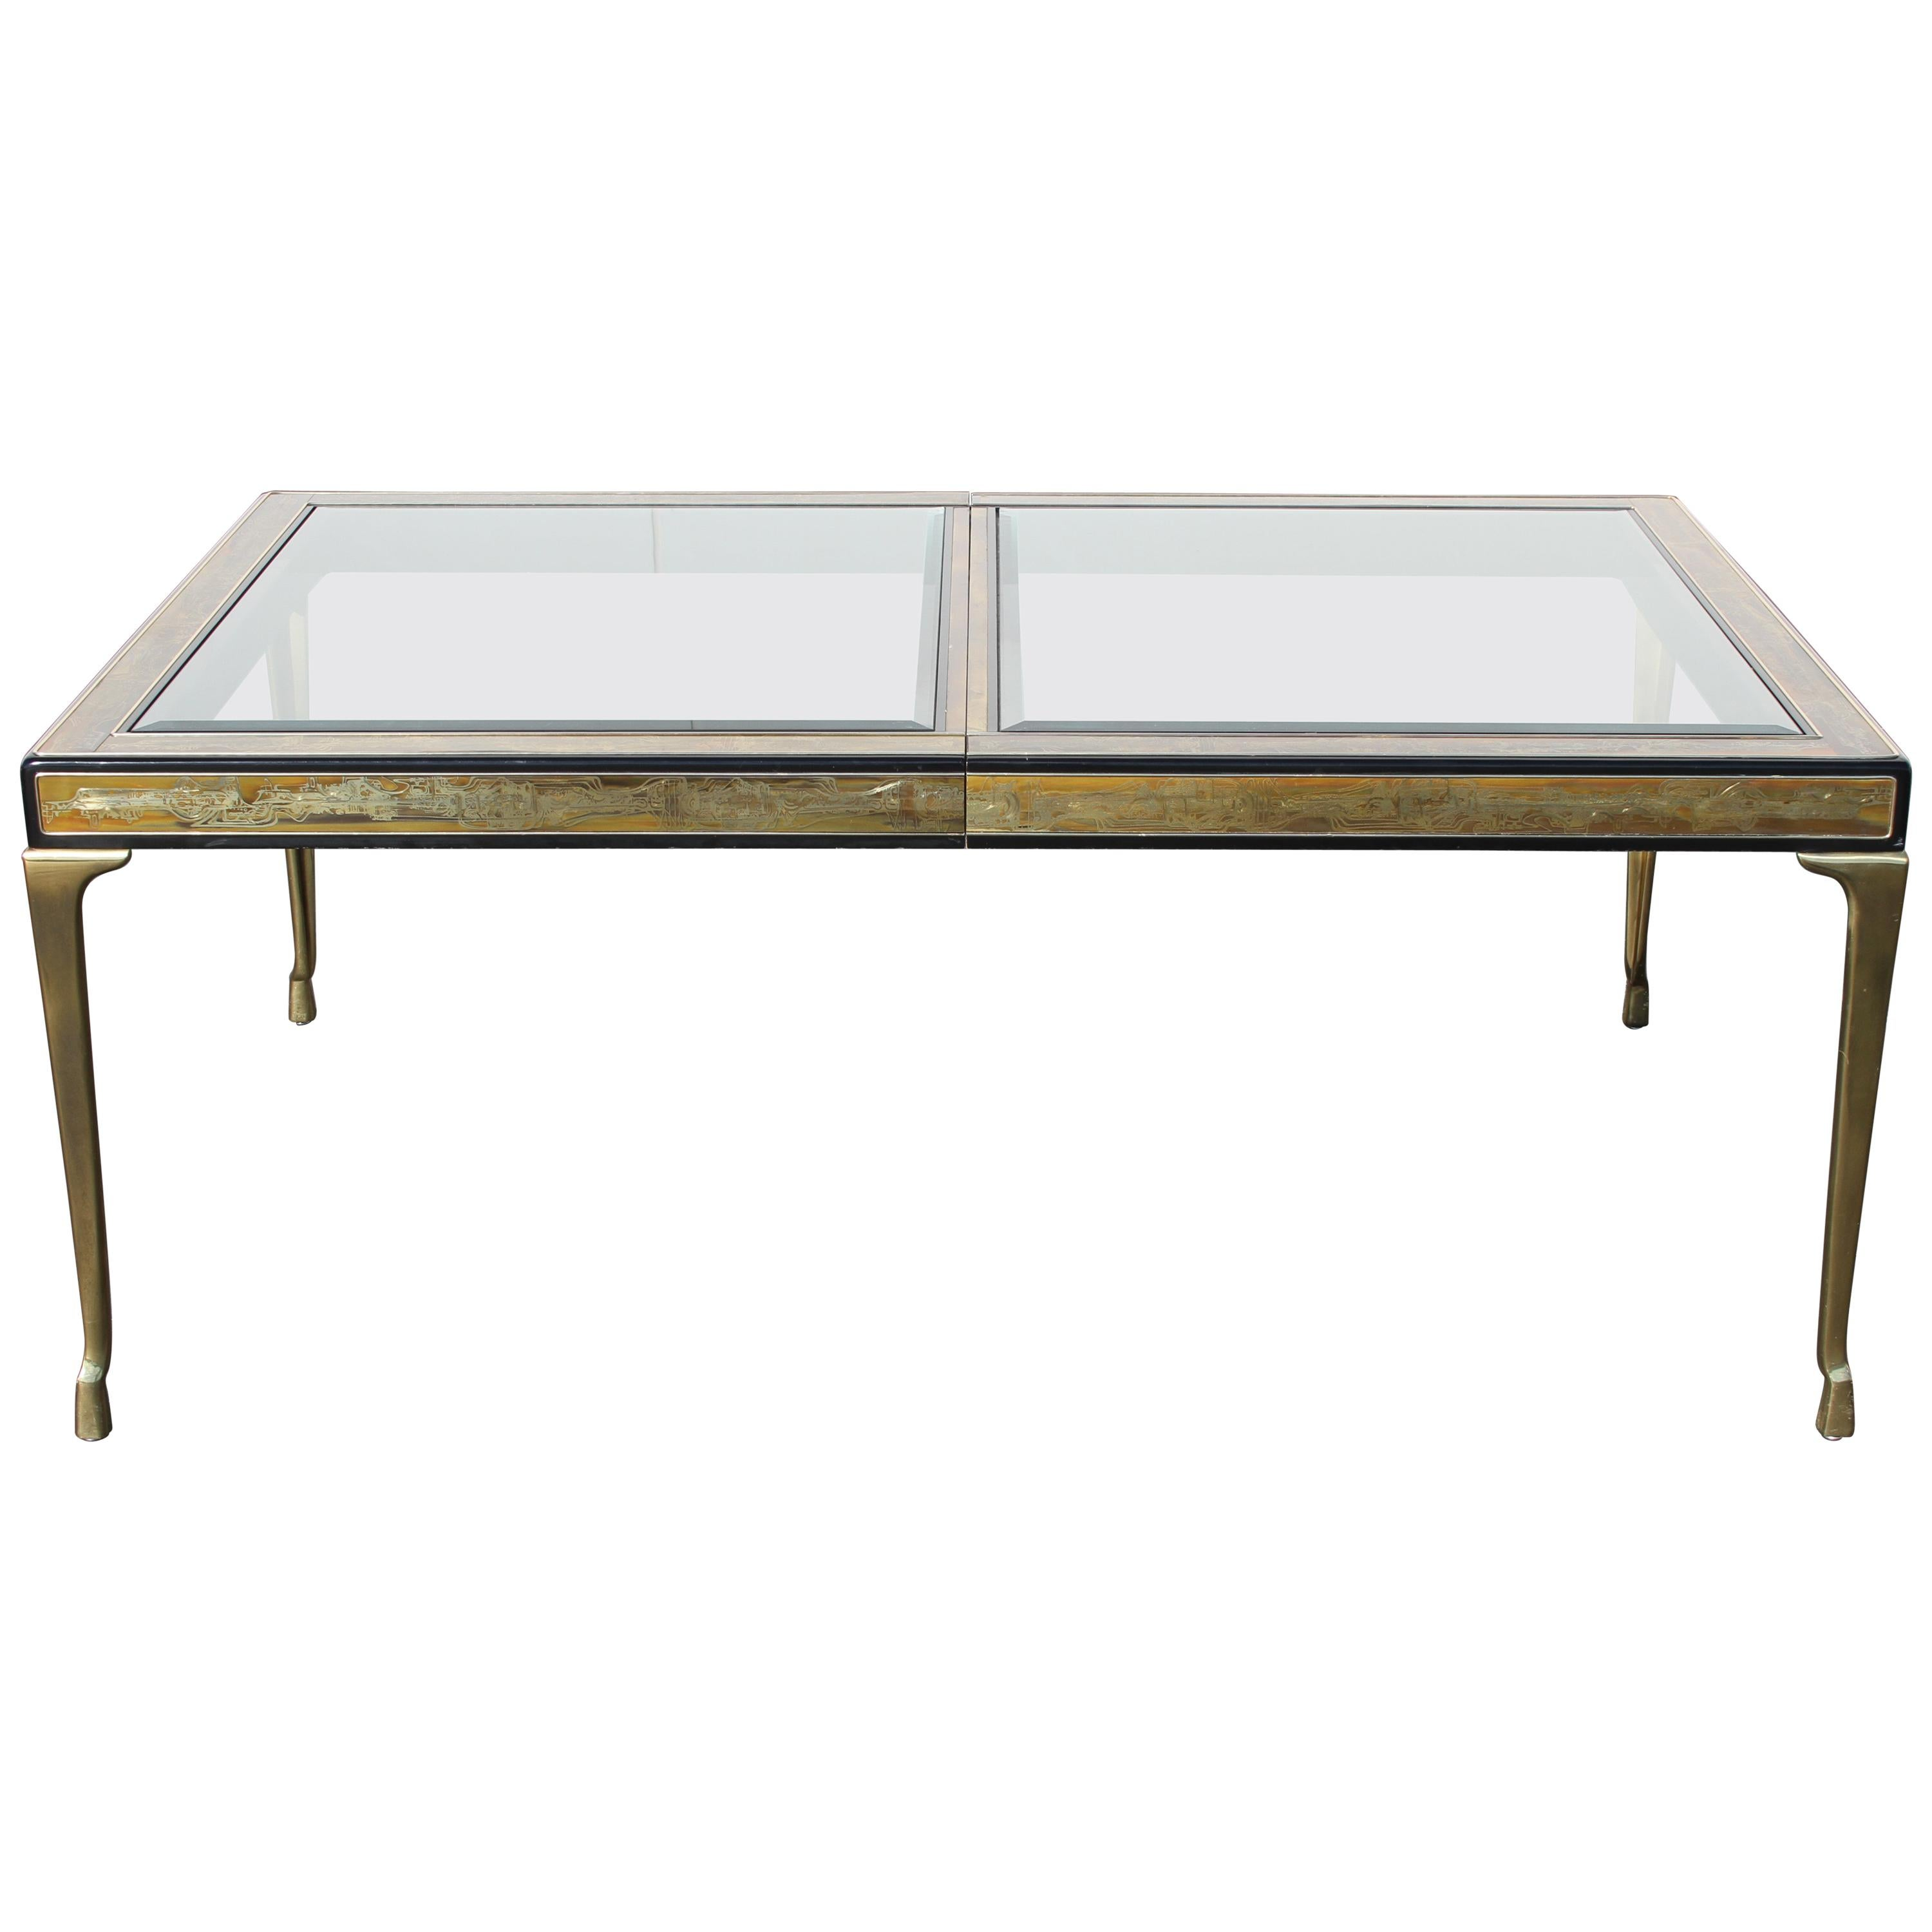 Bernhard Rohne for Mastercraft Acid-Etched Extension Dining Table, Extends